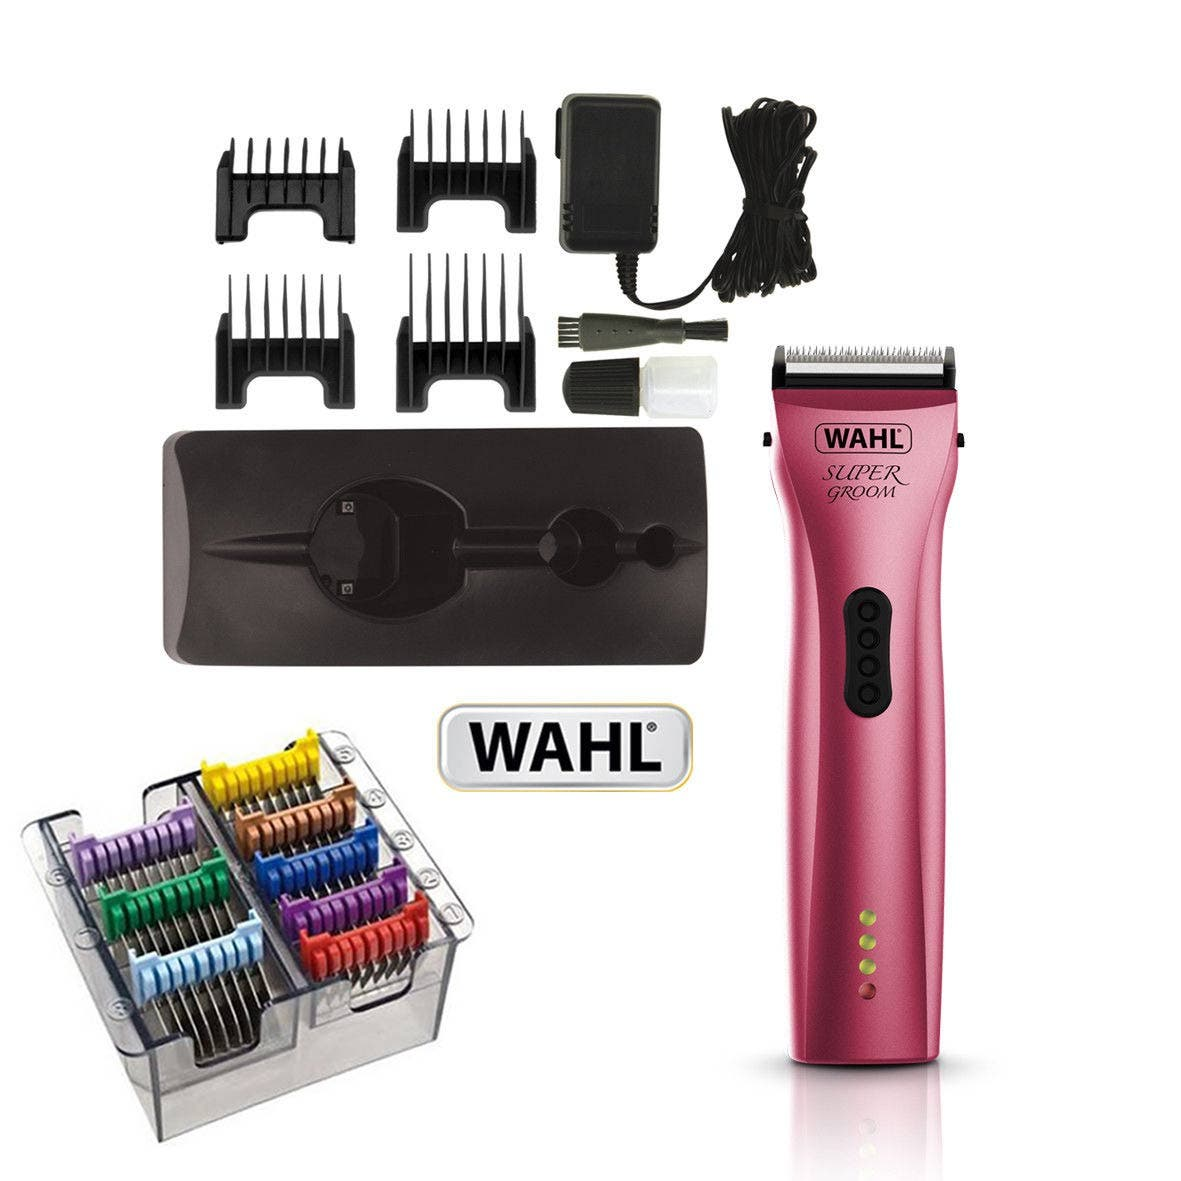 Wahl SUPER GROOM PINK Animal Cordless Clipper + 5 in 1 Stainless Steel Guides